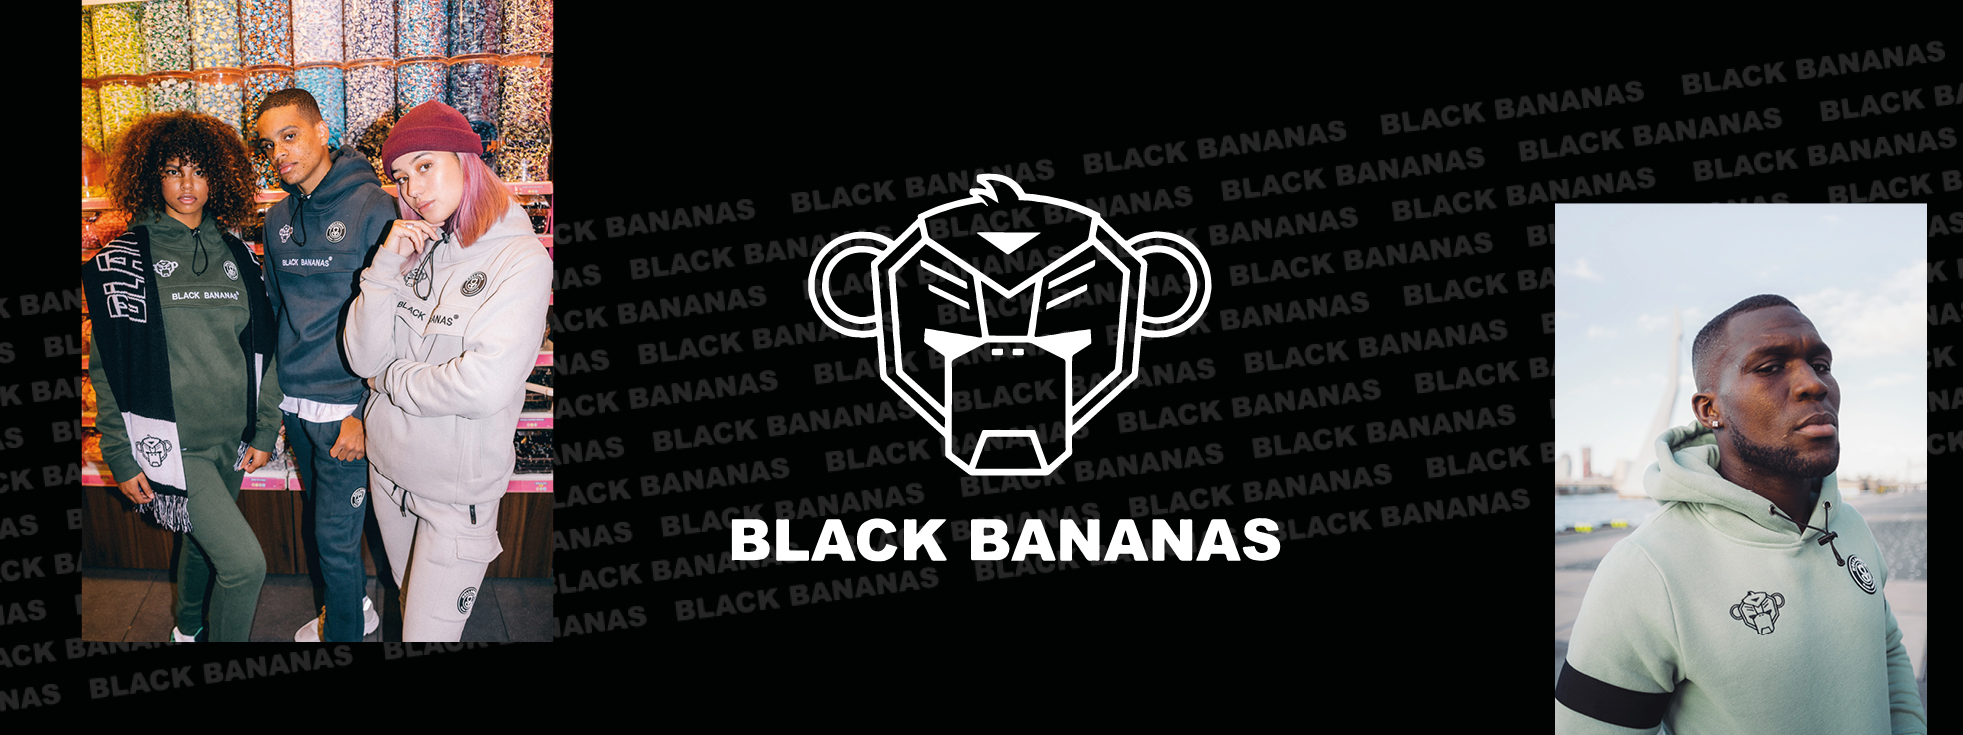 Black Bananas 100%voetbal